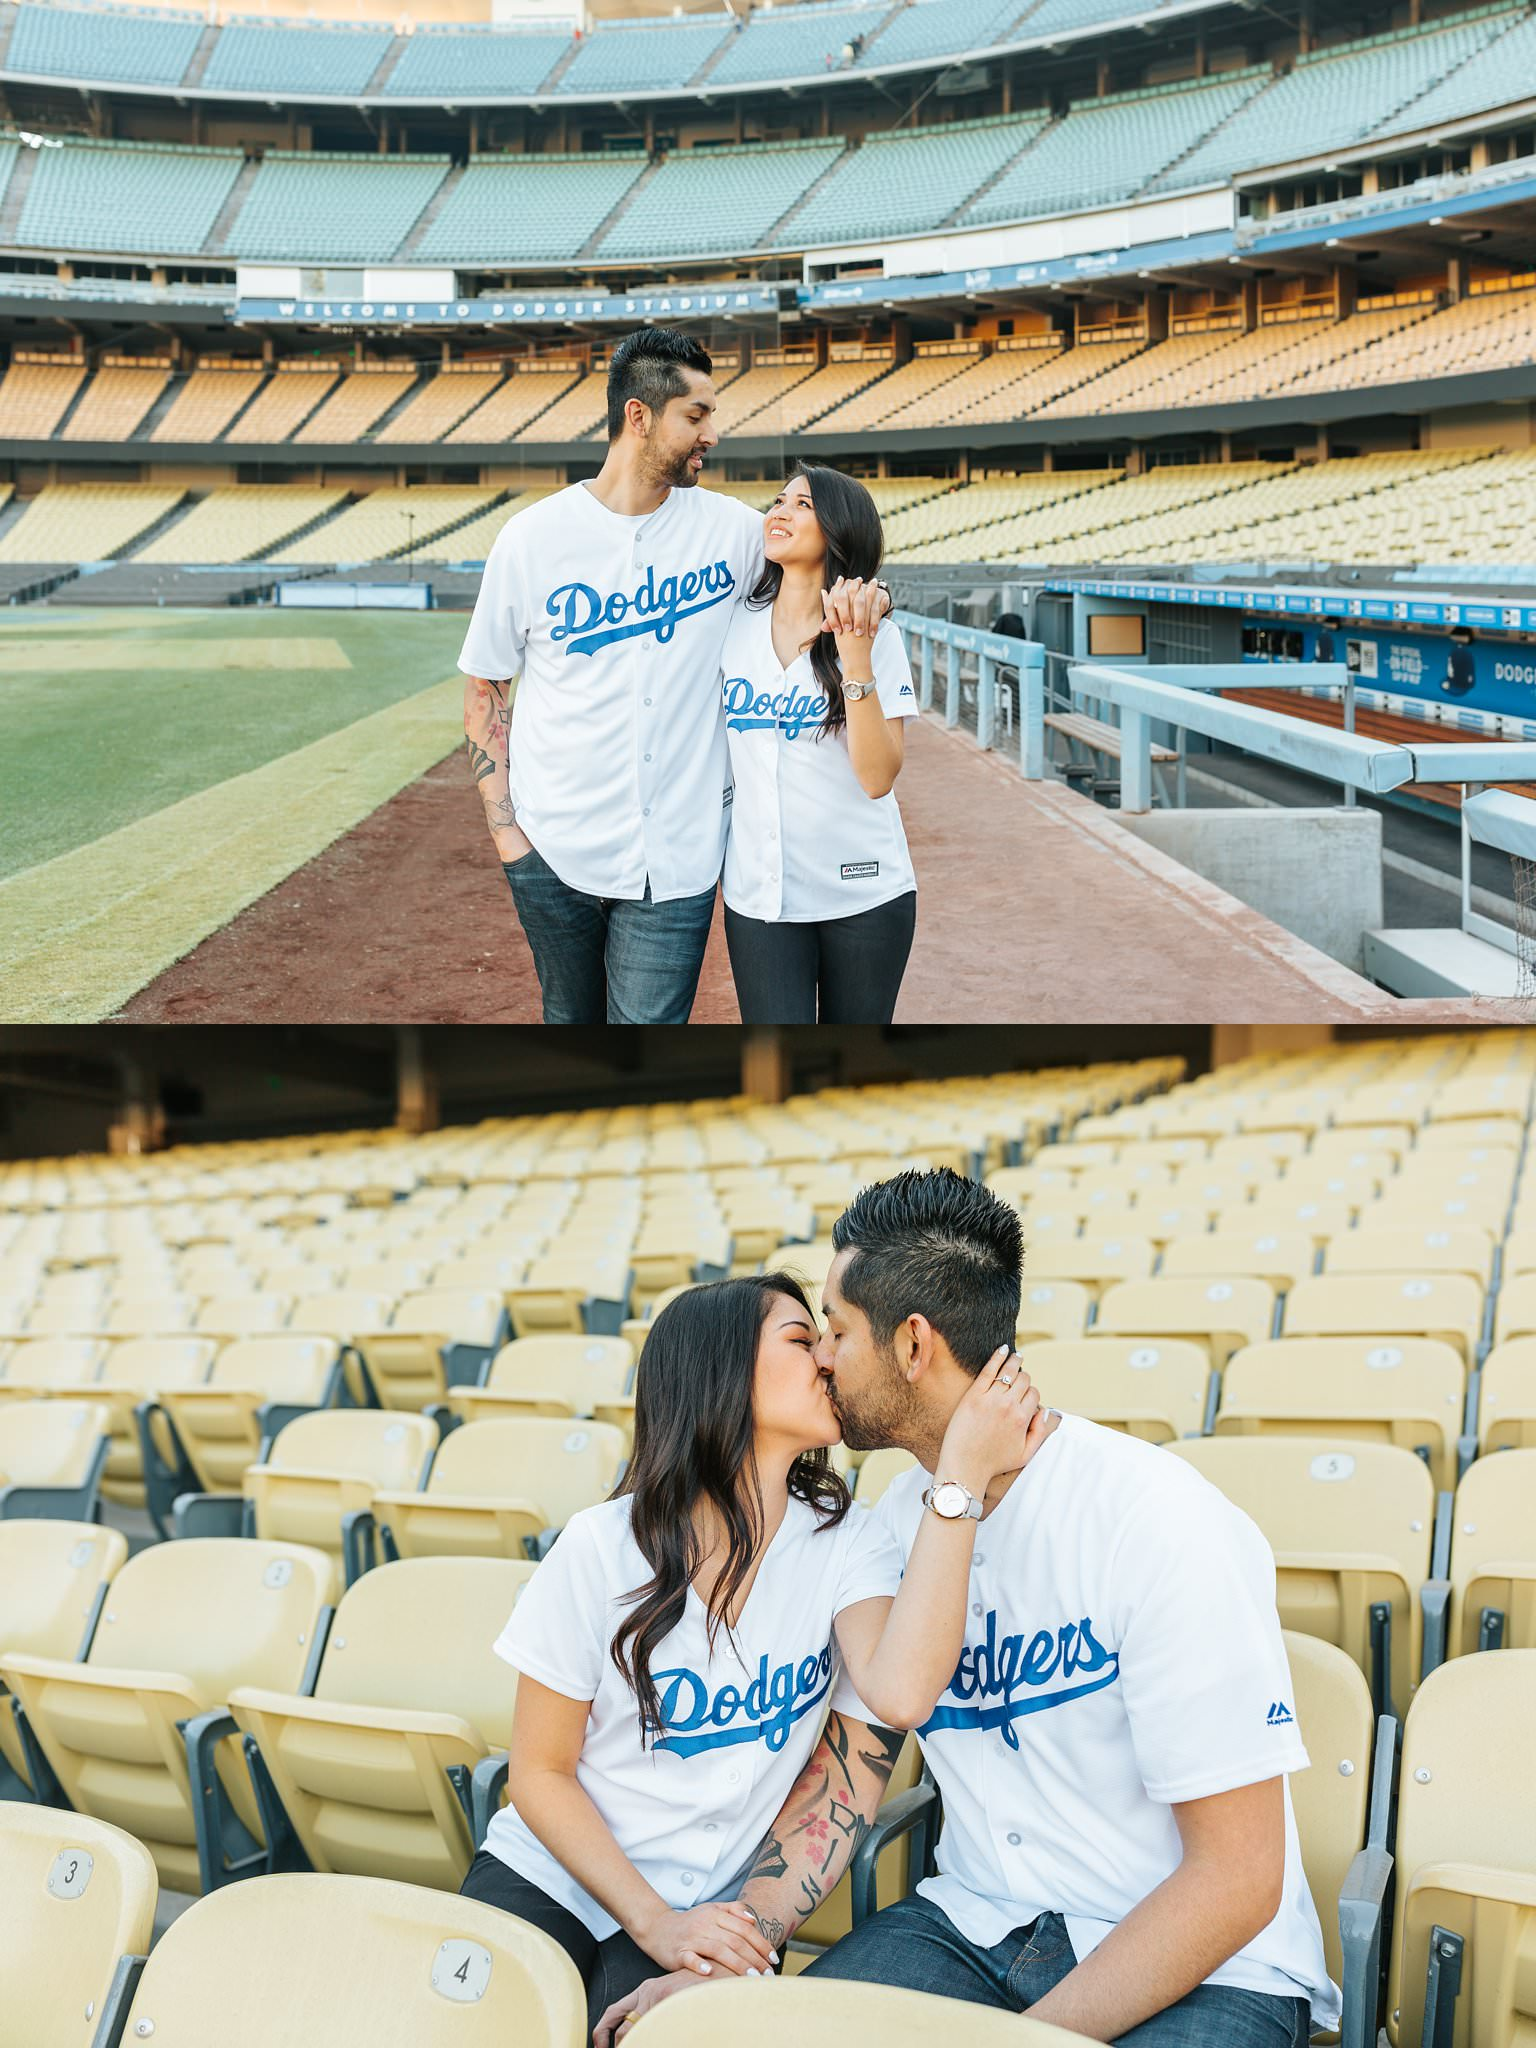 Super cute engagement at Dodger Stadium - Dodger Stadium engagement photos - http://brittneyhannonphotography.com